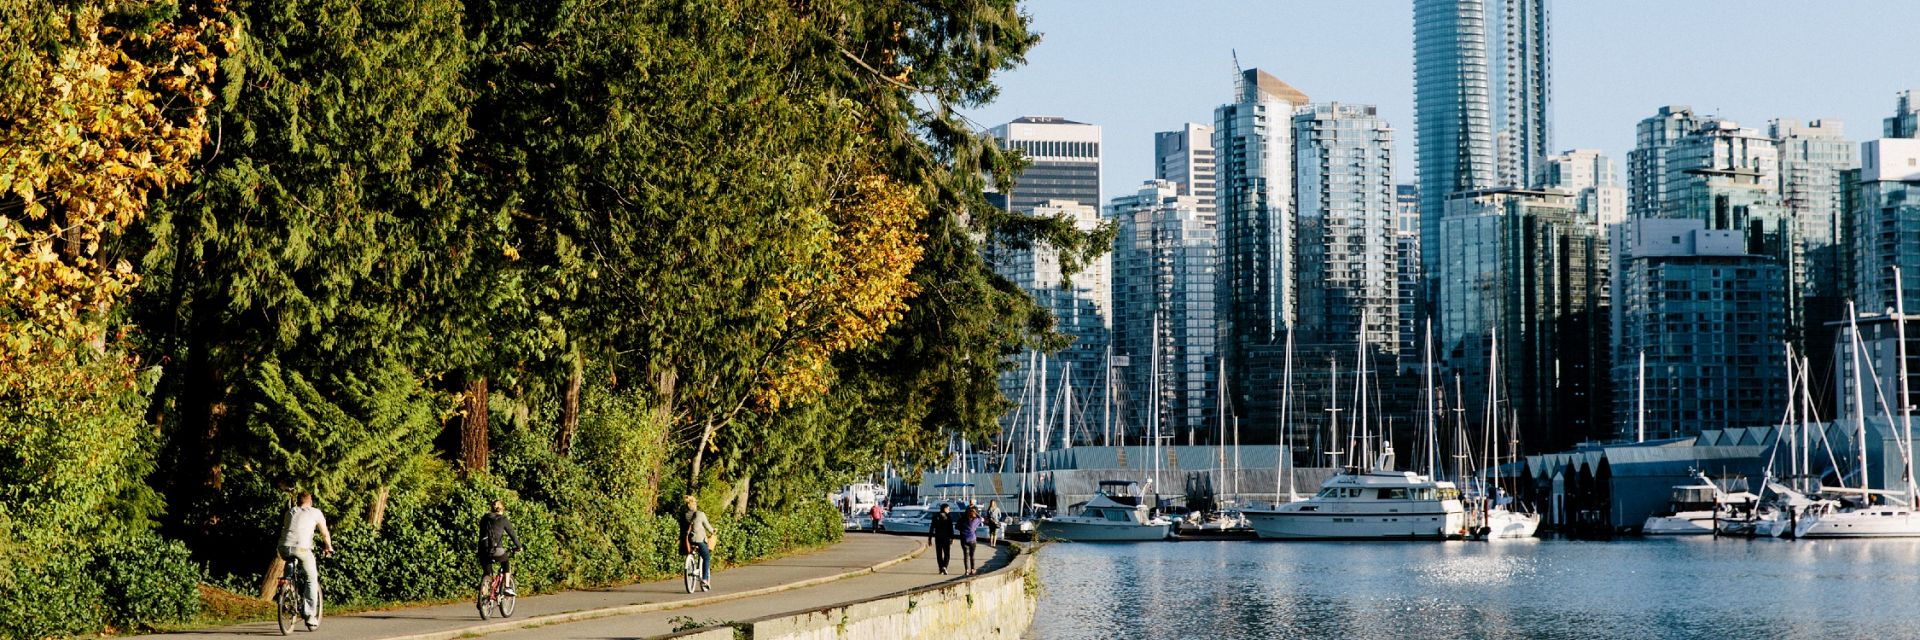 Cyclists and pedestrians riding around Stanley Park in Vancouver